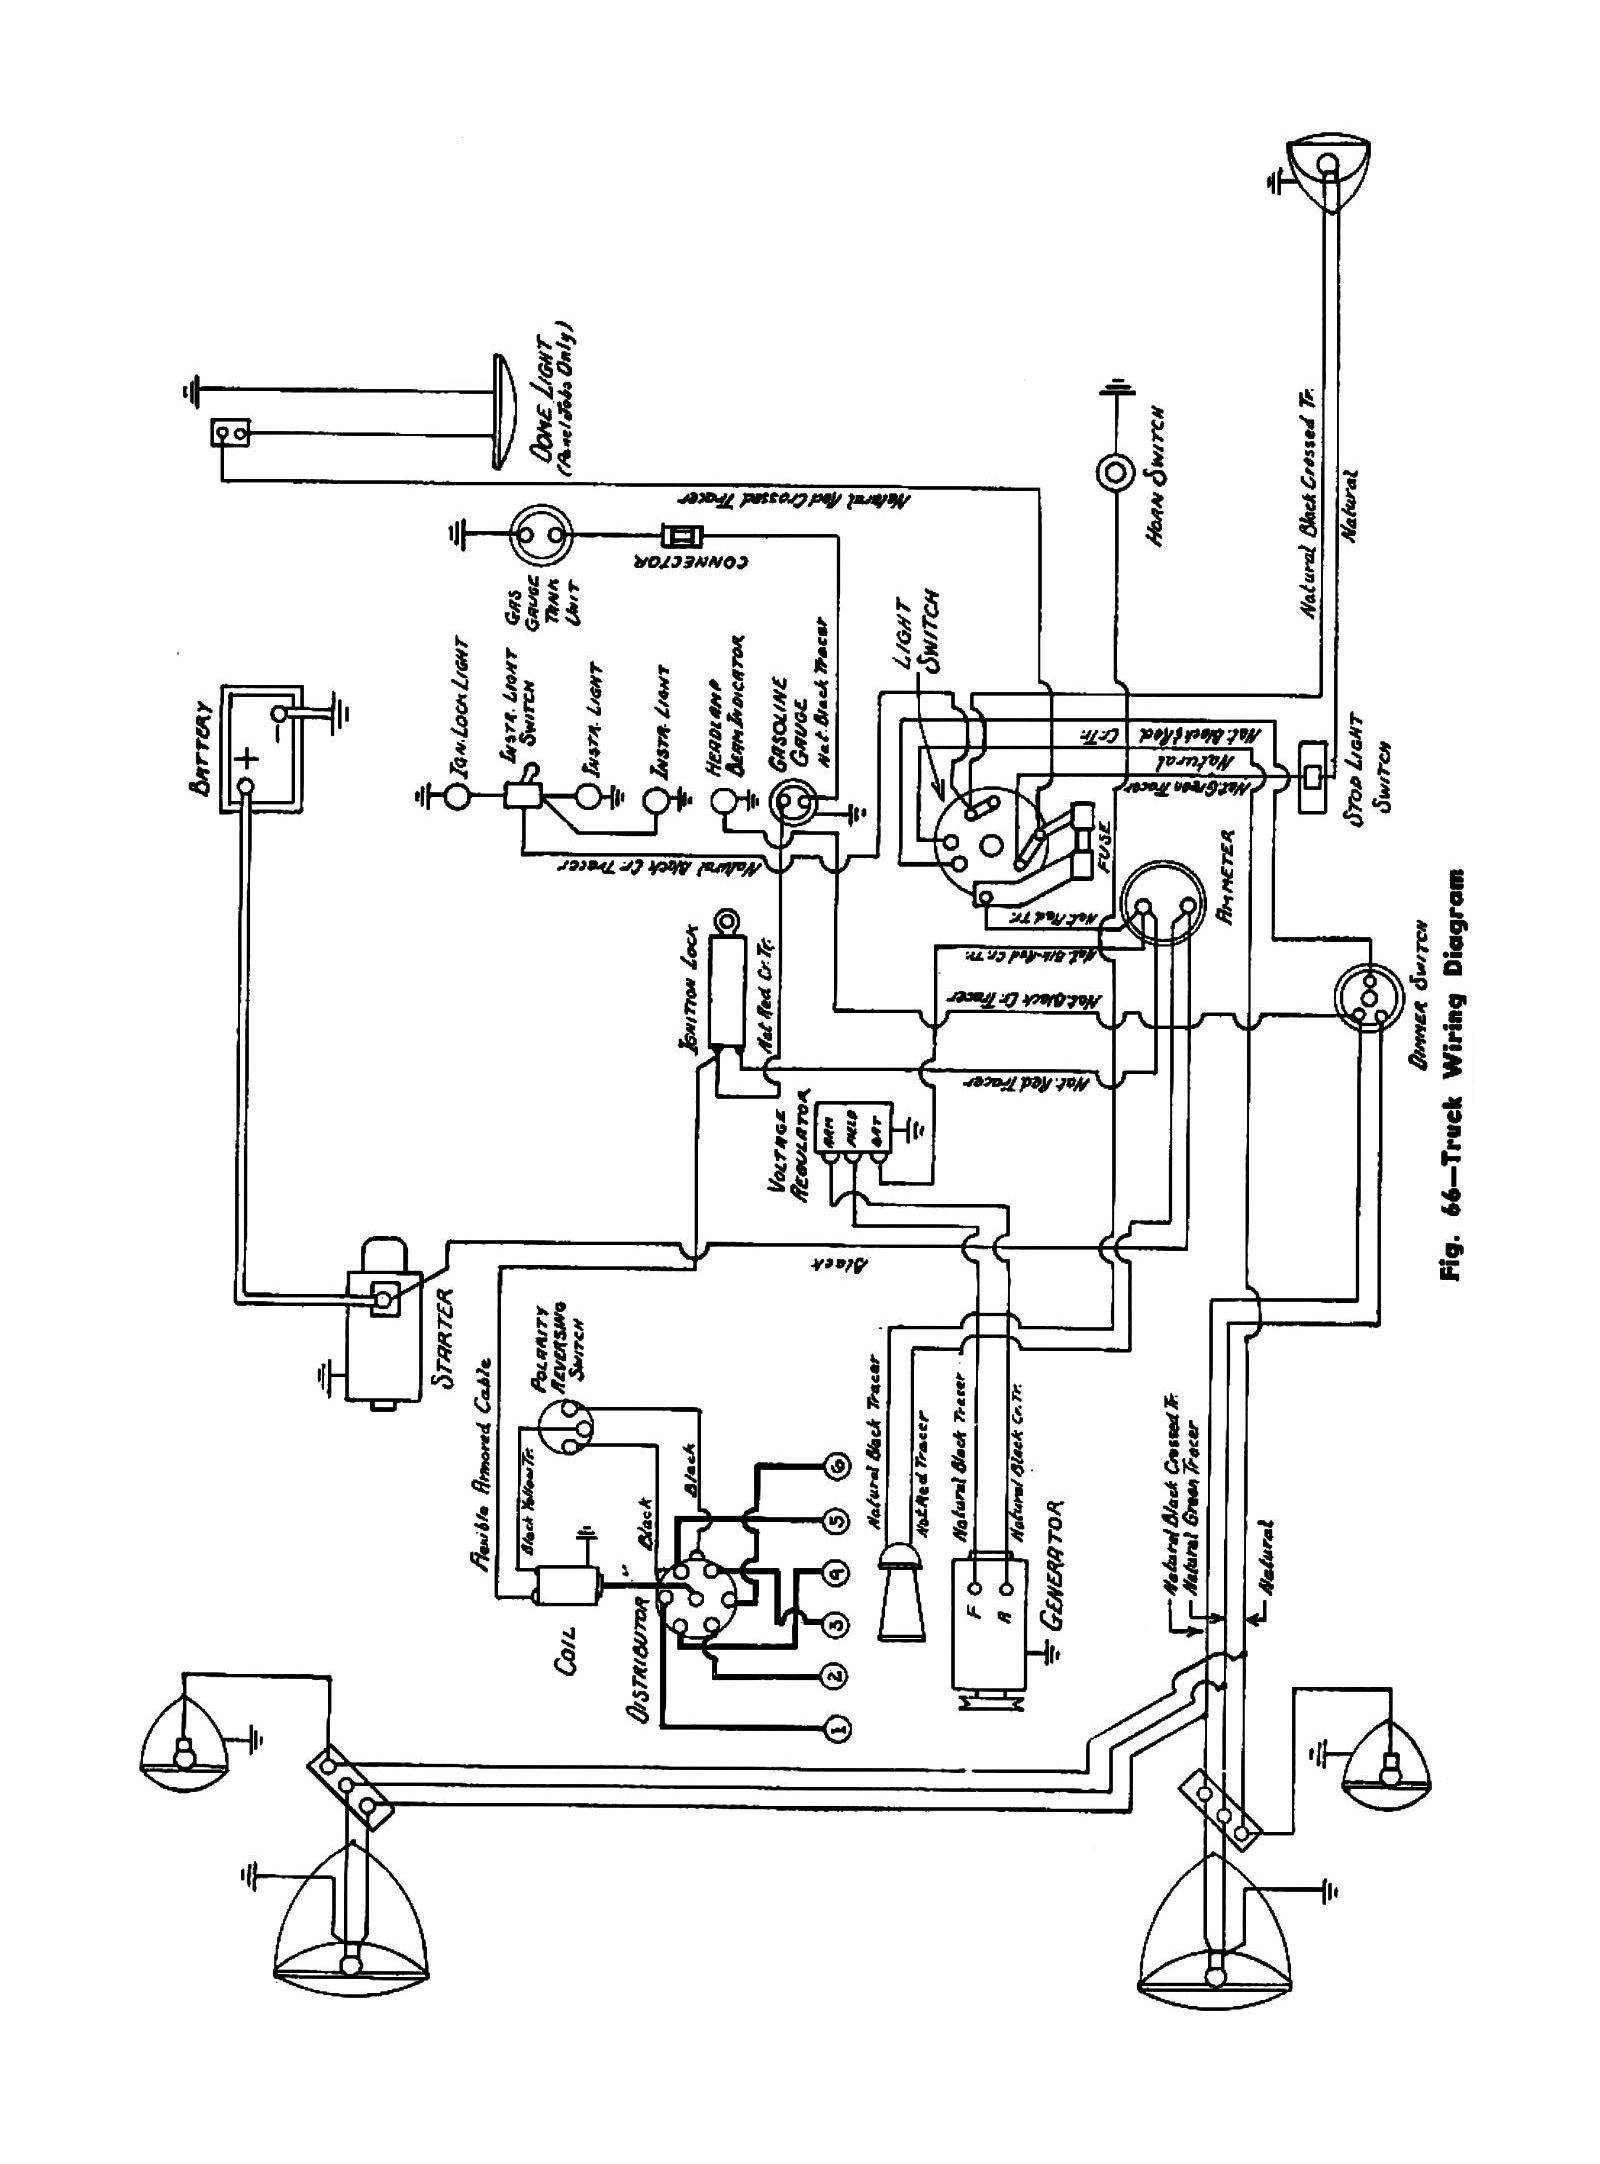 Wiring Diagram For 1965 Chevy Truck Auto Books Of Electrical A Car Simple Trucks Diagrams Box Rh Cad Fds Co Uk